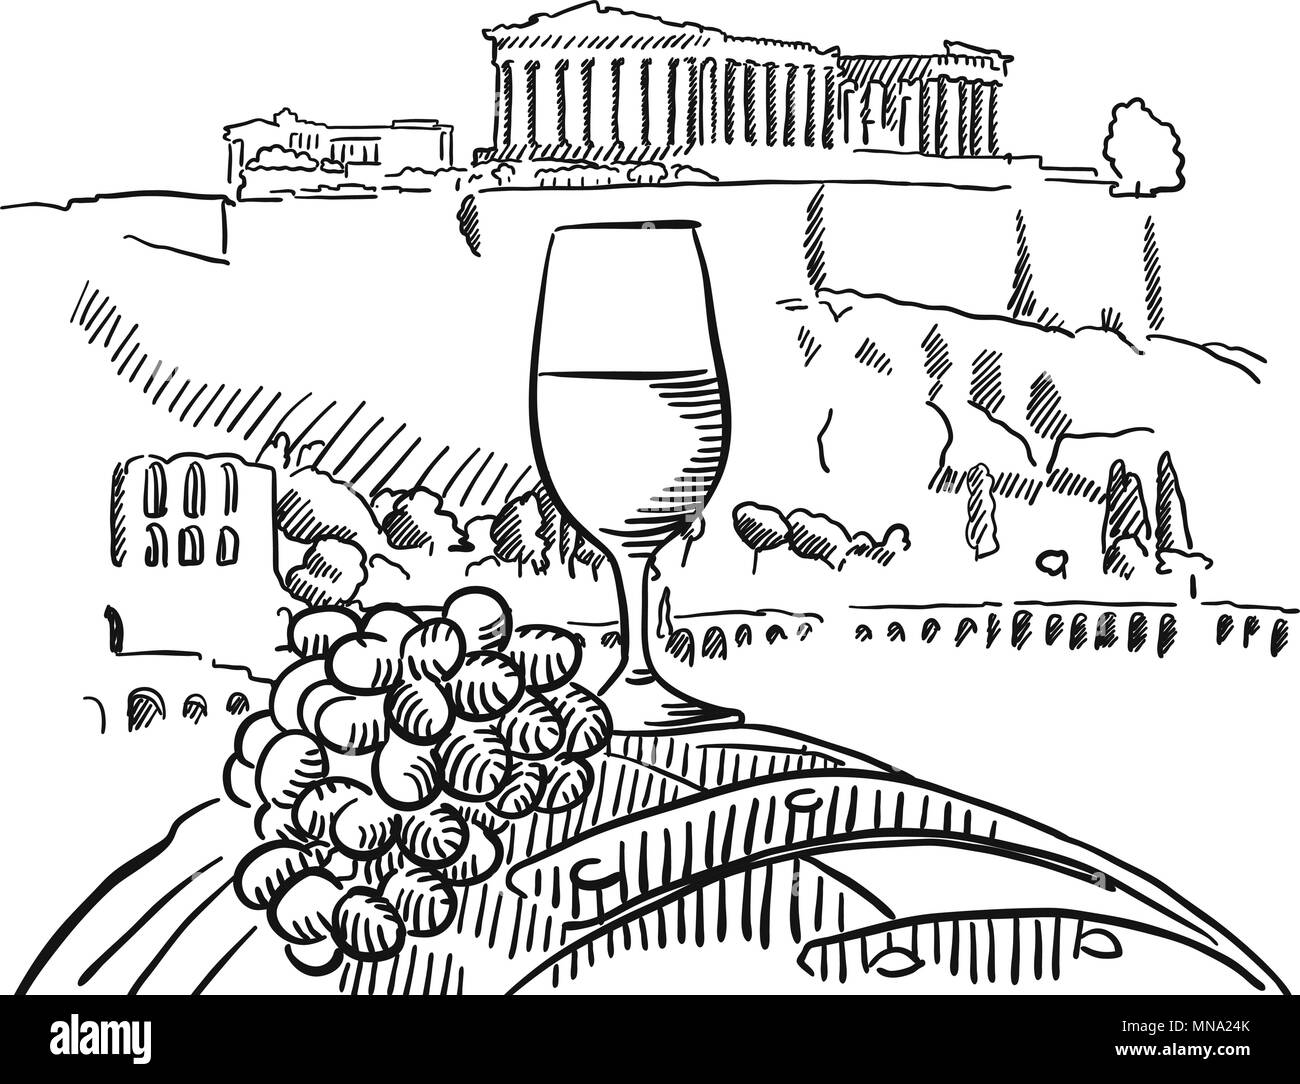 Vine Glass on Barrel in Front of Acropolis, Athens, Vector Sketched Outline Artwork - Stock Vector